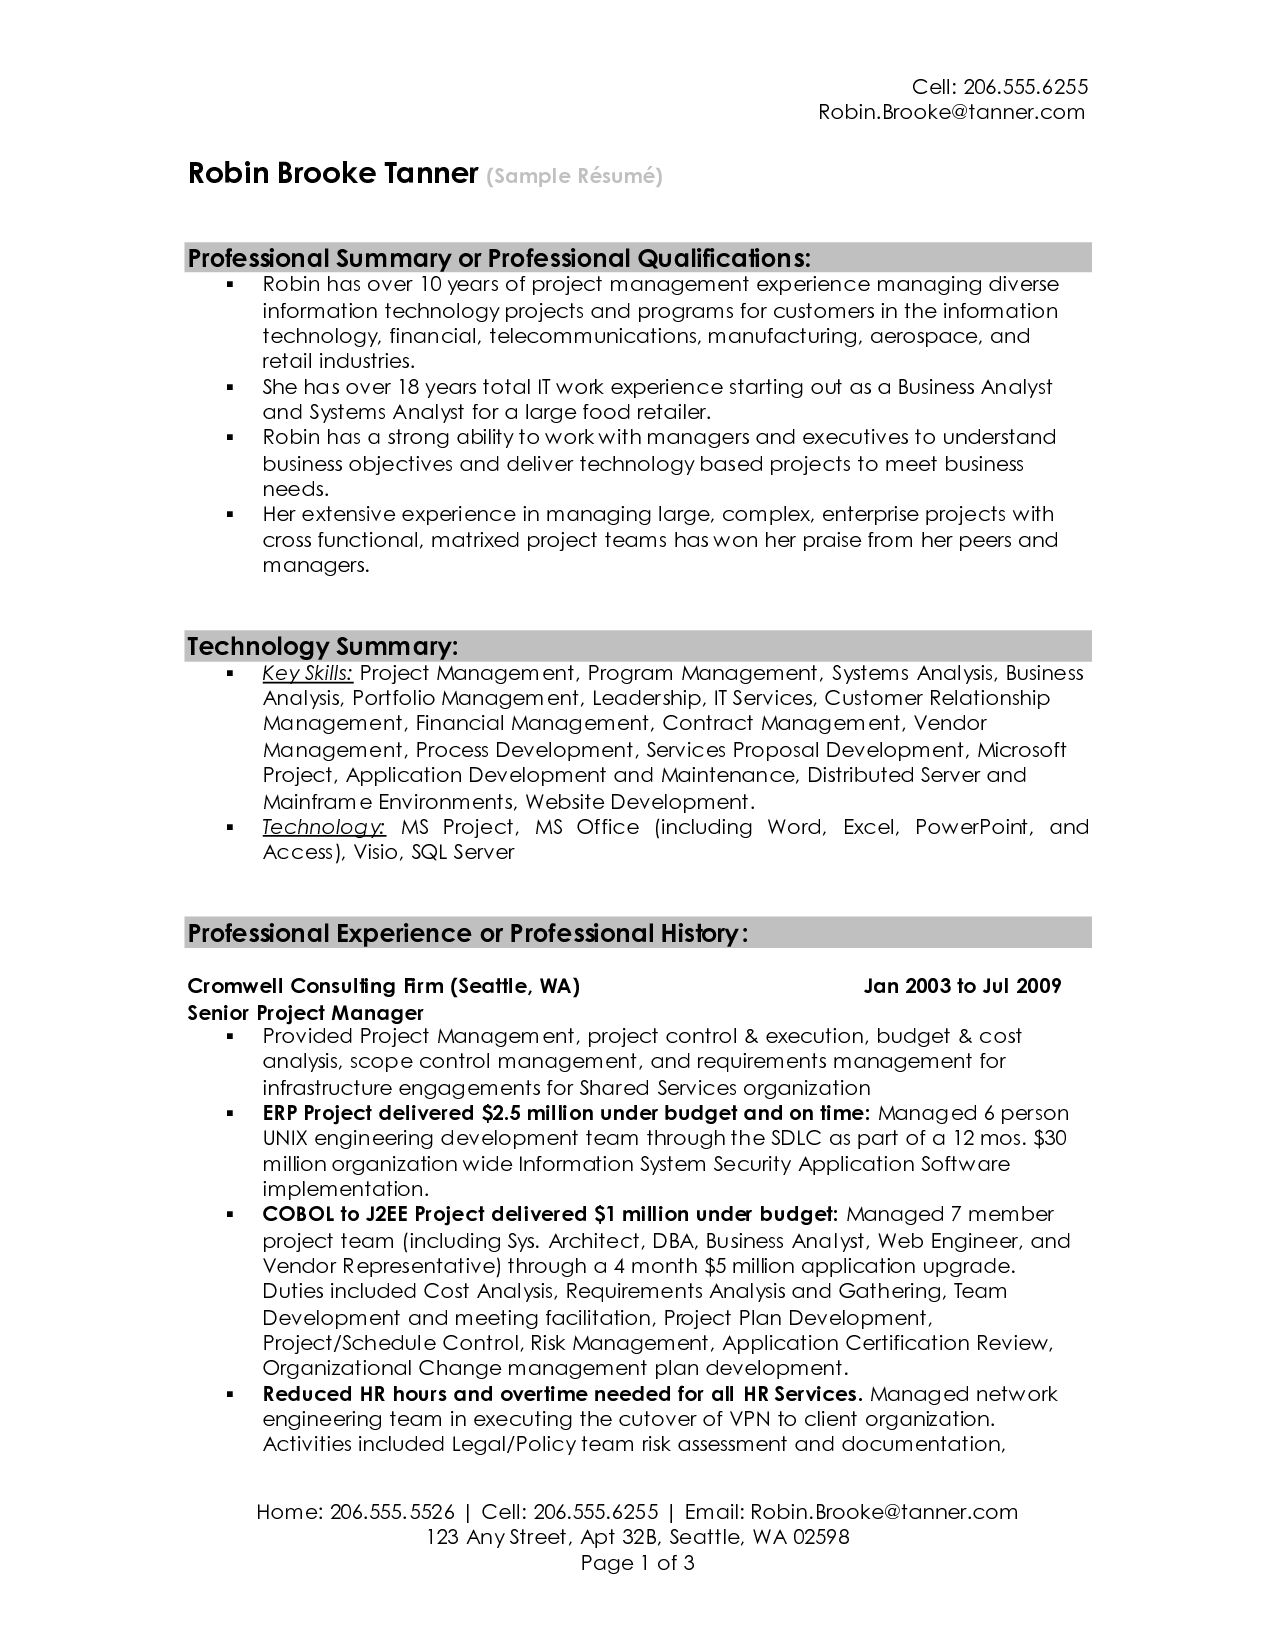 Perfect Resume Example Professional Summary Resume Examples Professional Resume Summary